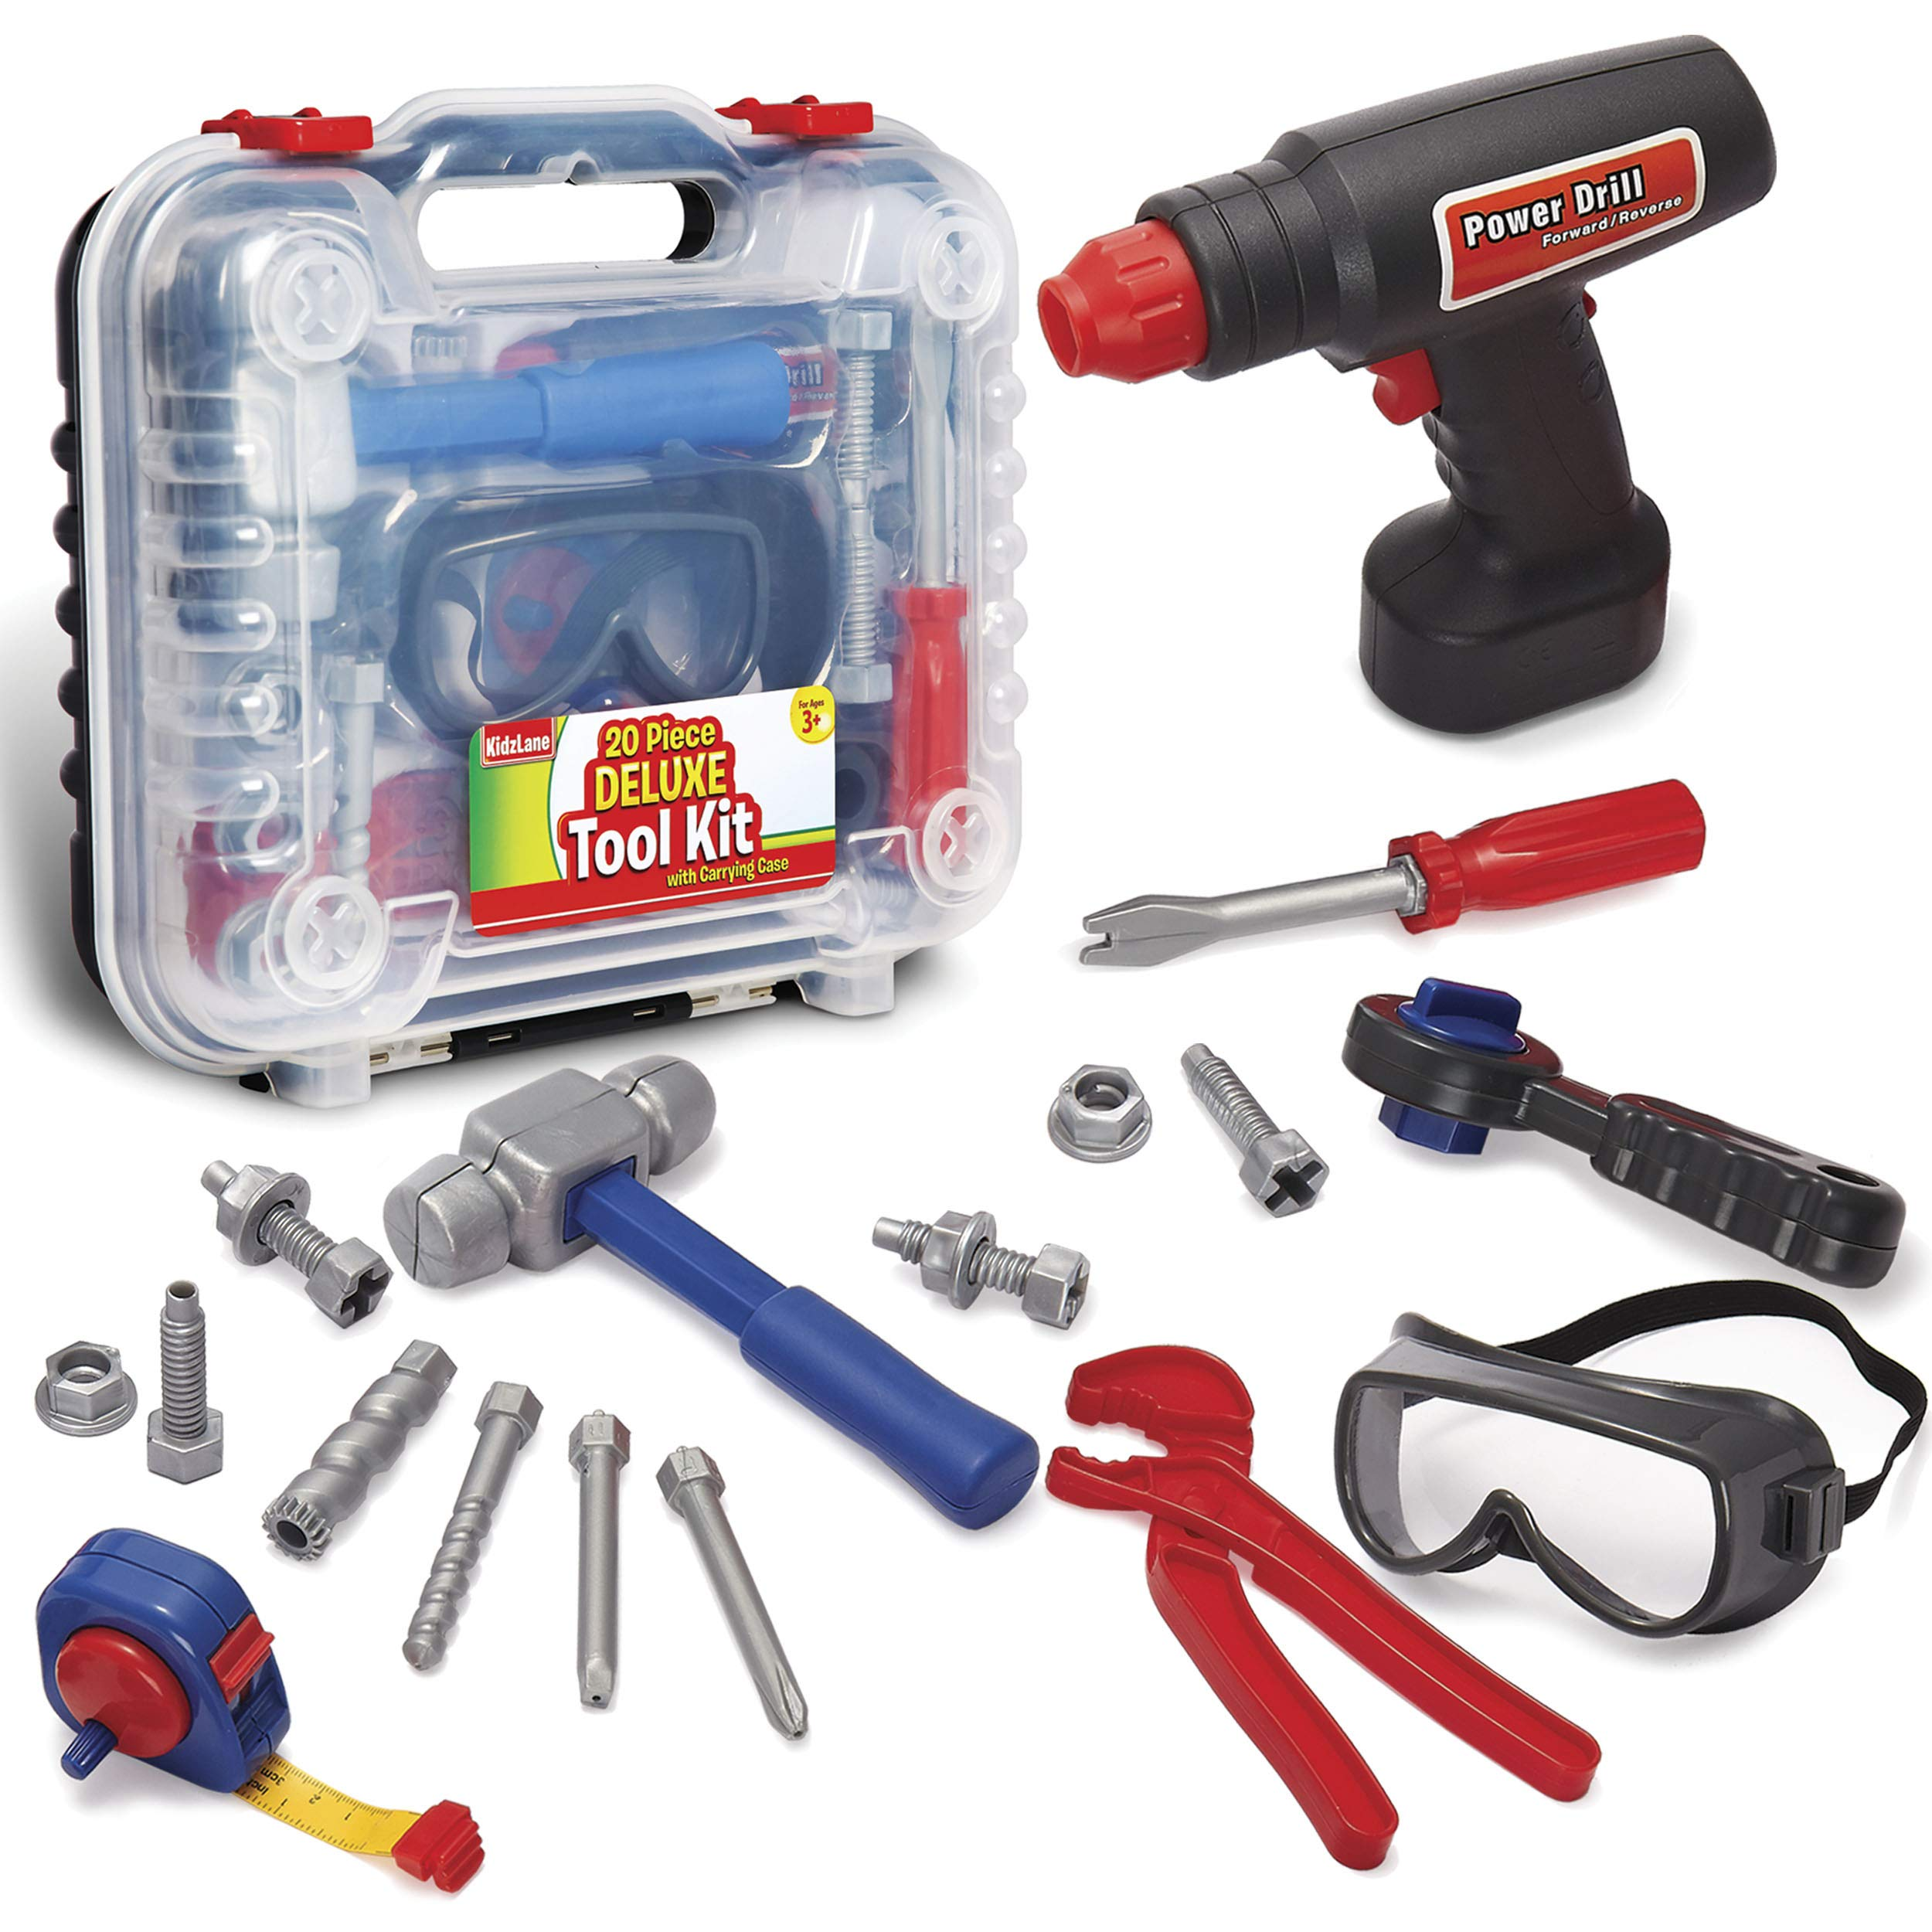 Durable Kids Tool Set with Electronic Cordless Drill and 18 Pretend Play Construction Accessories, with a Sturdy Case by Kidzlane